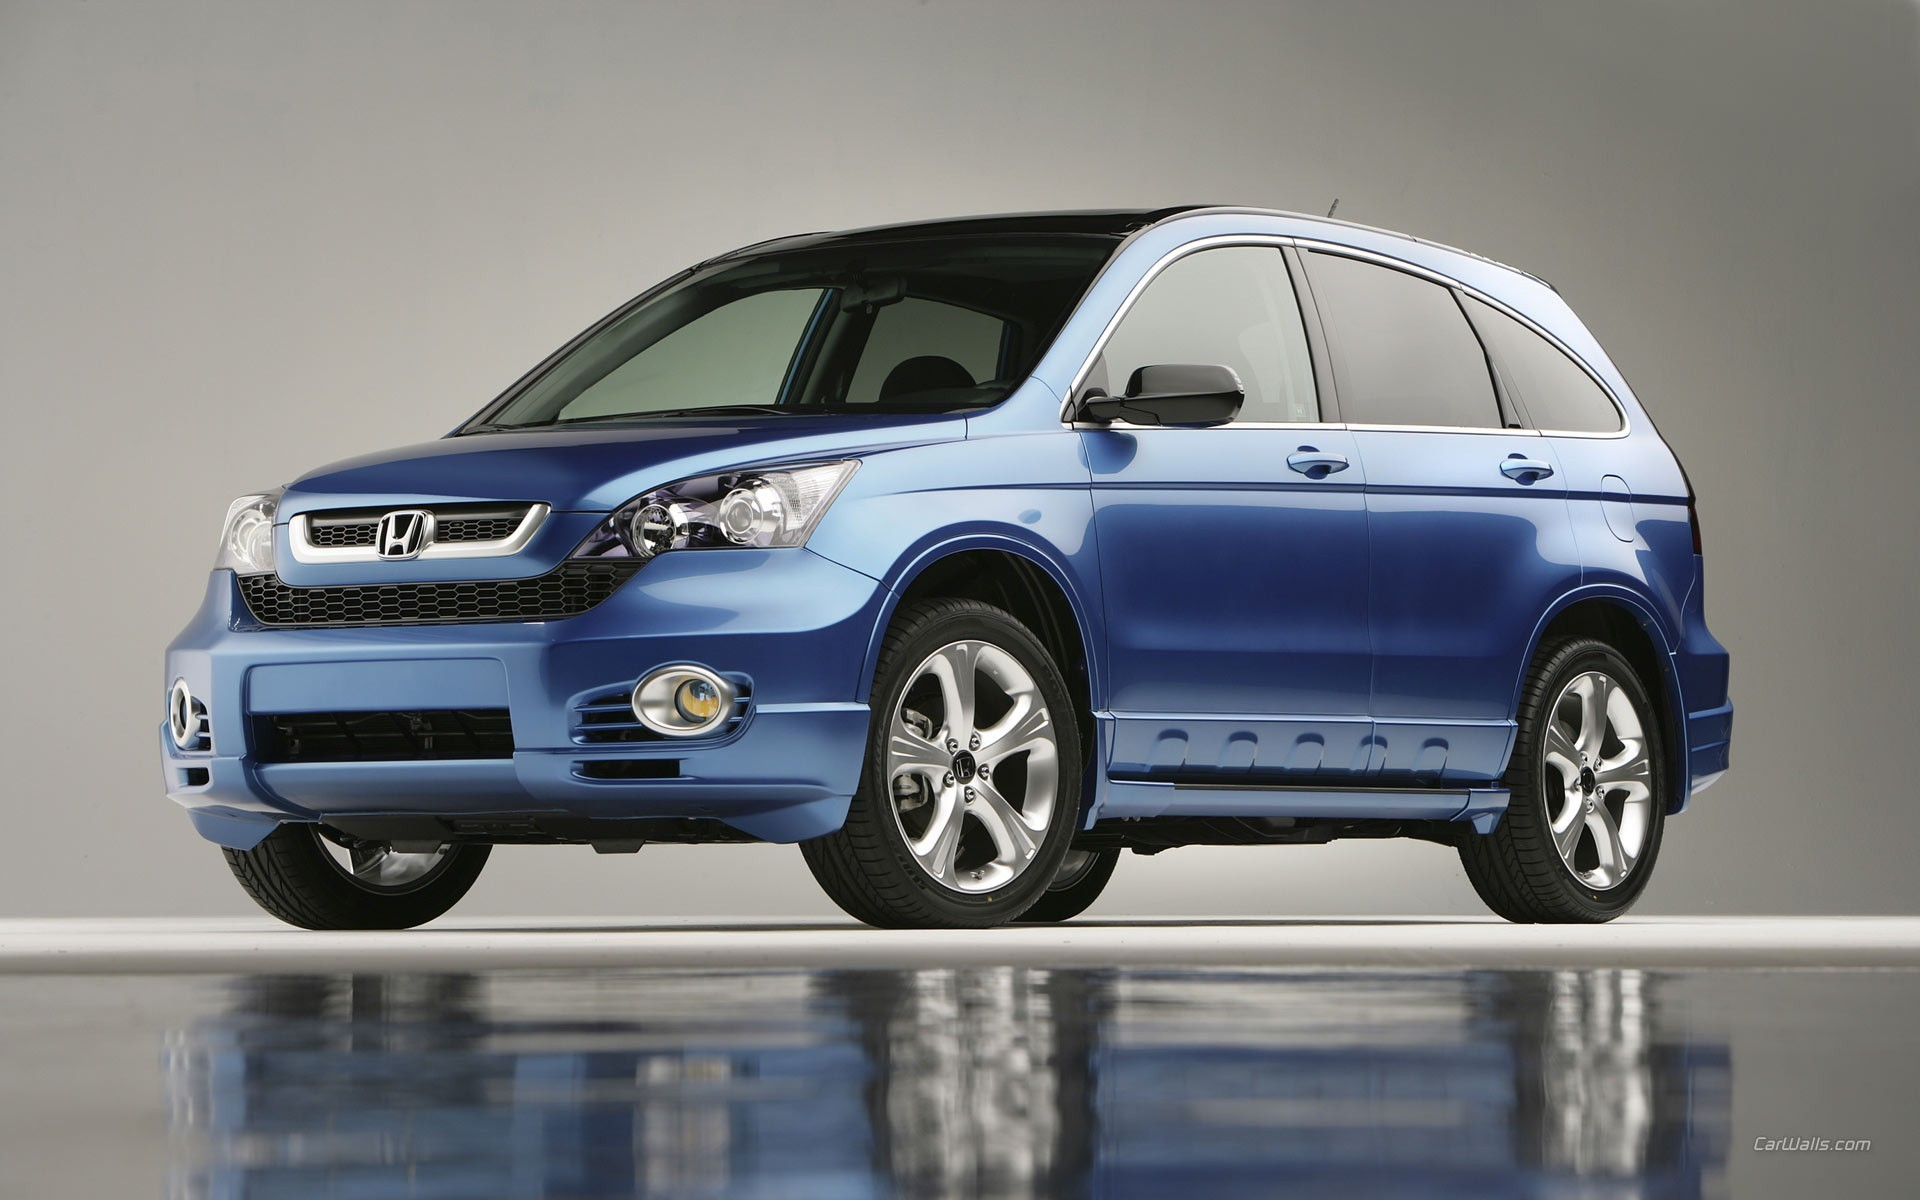 Honda Crv Cars Wallpaper